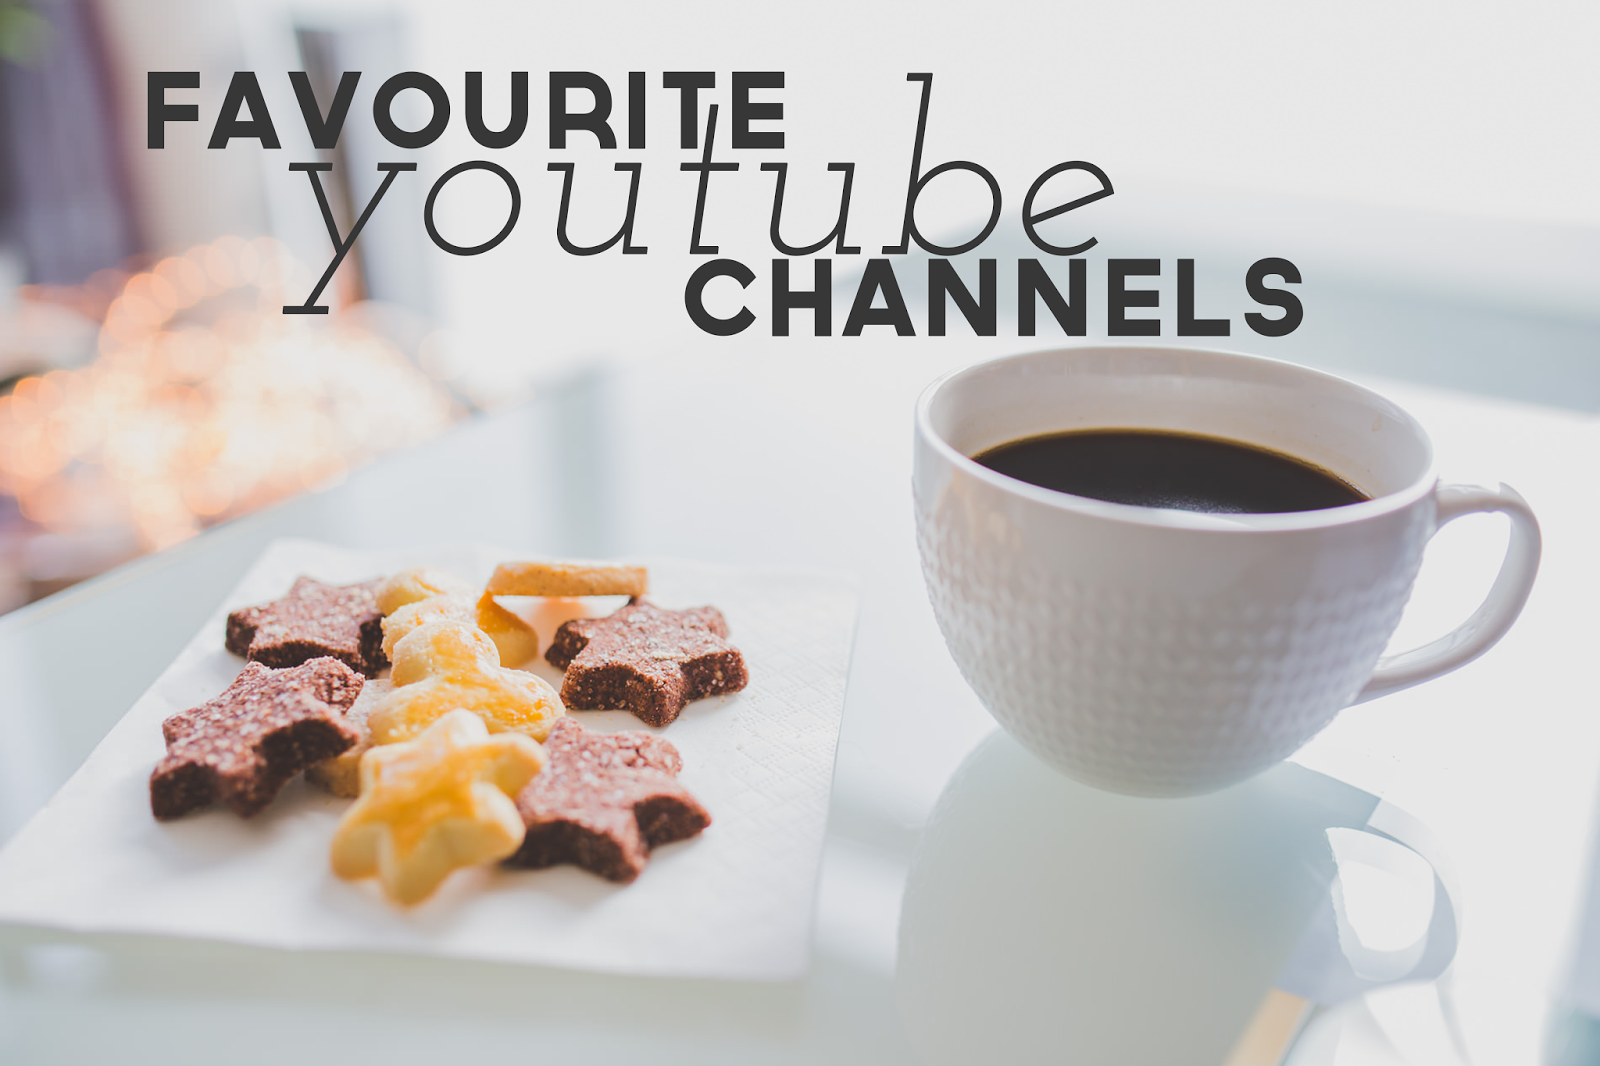 FAVOURITE youtube channels